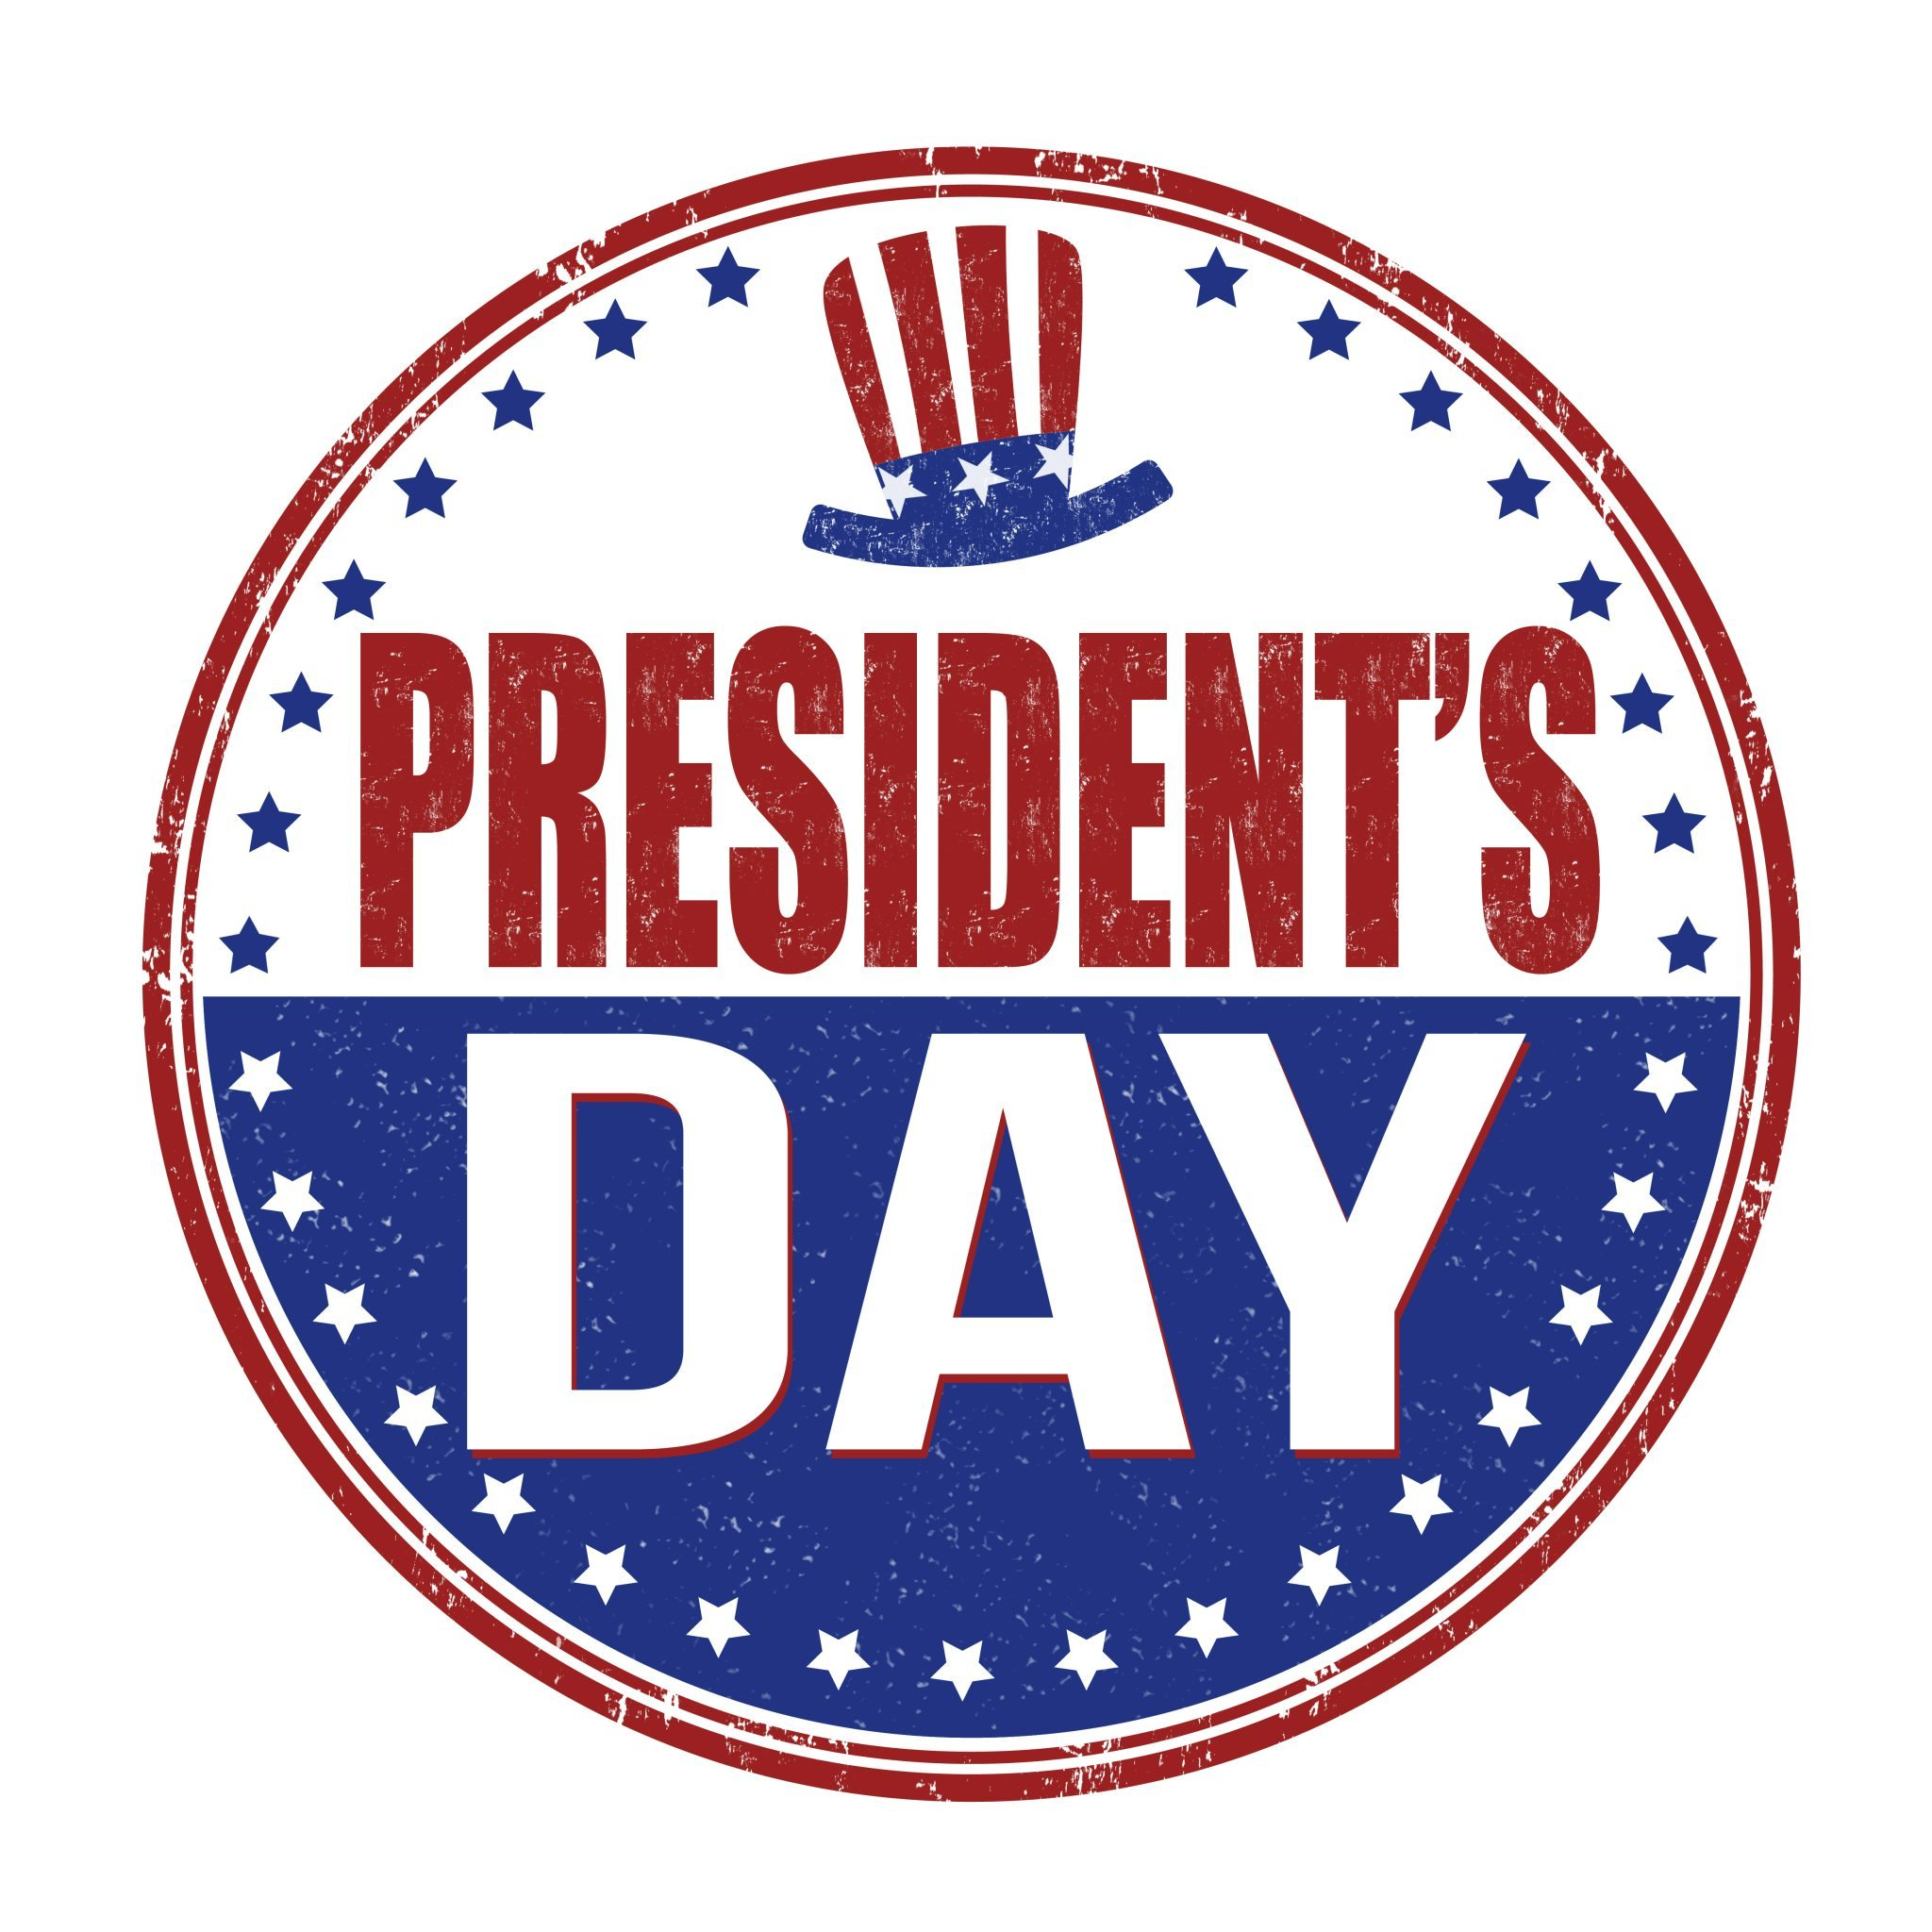 Past President's Day